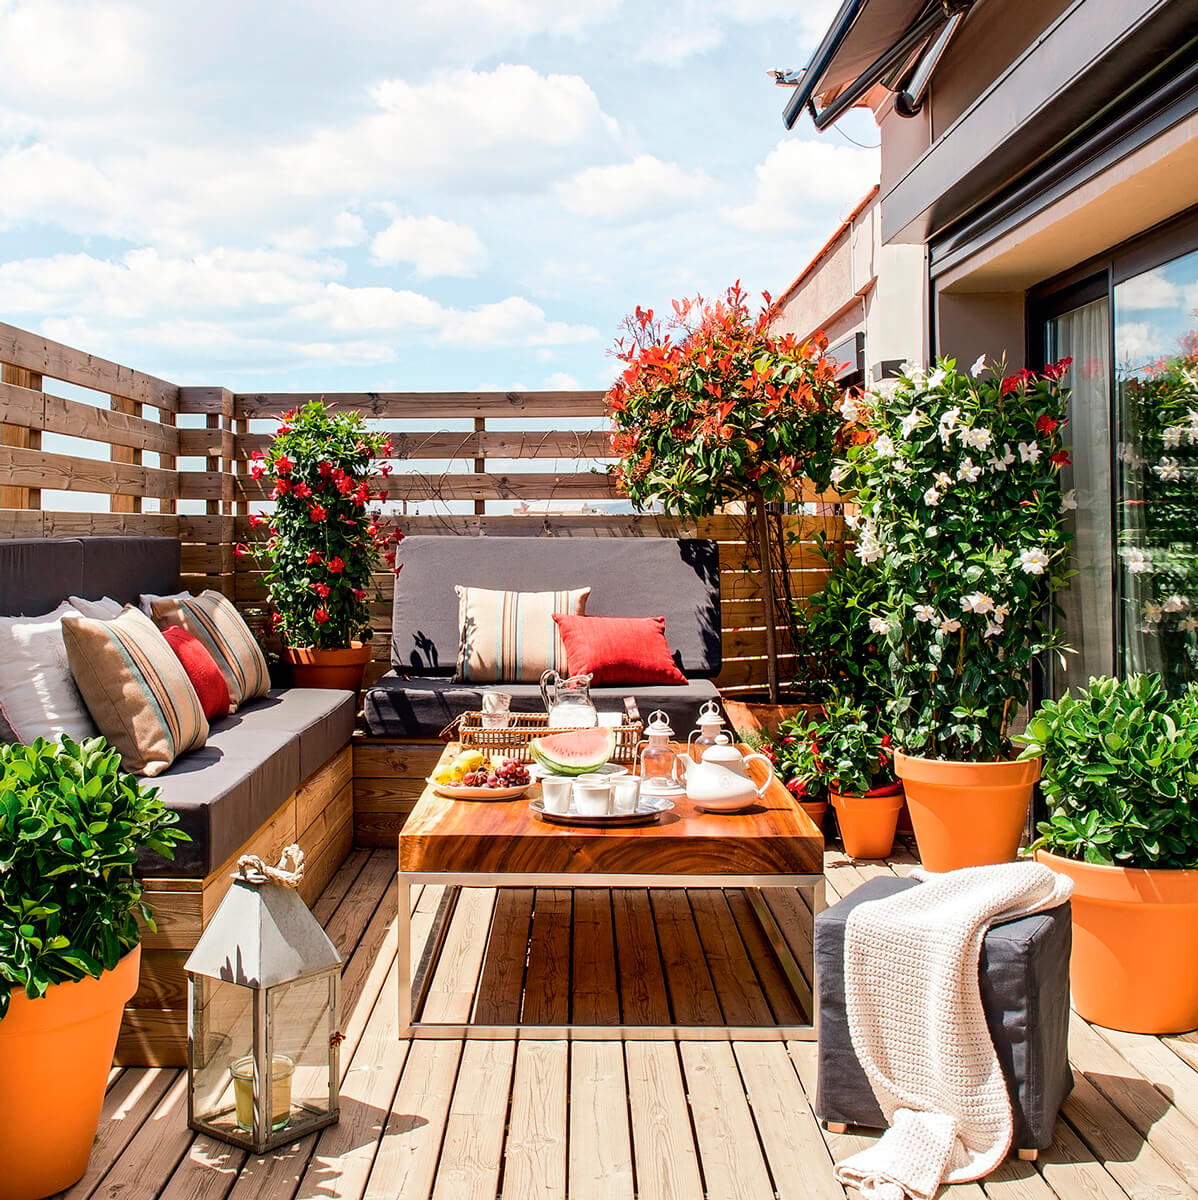 10 ideas para decorar terrazas y balcones handfie diy for Como remodelar mi jardin